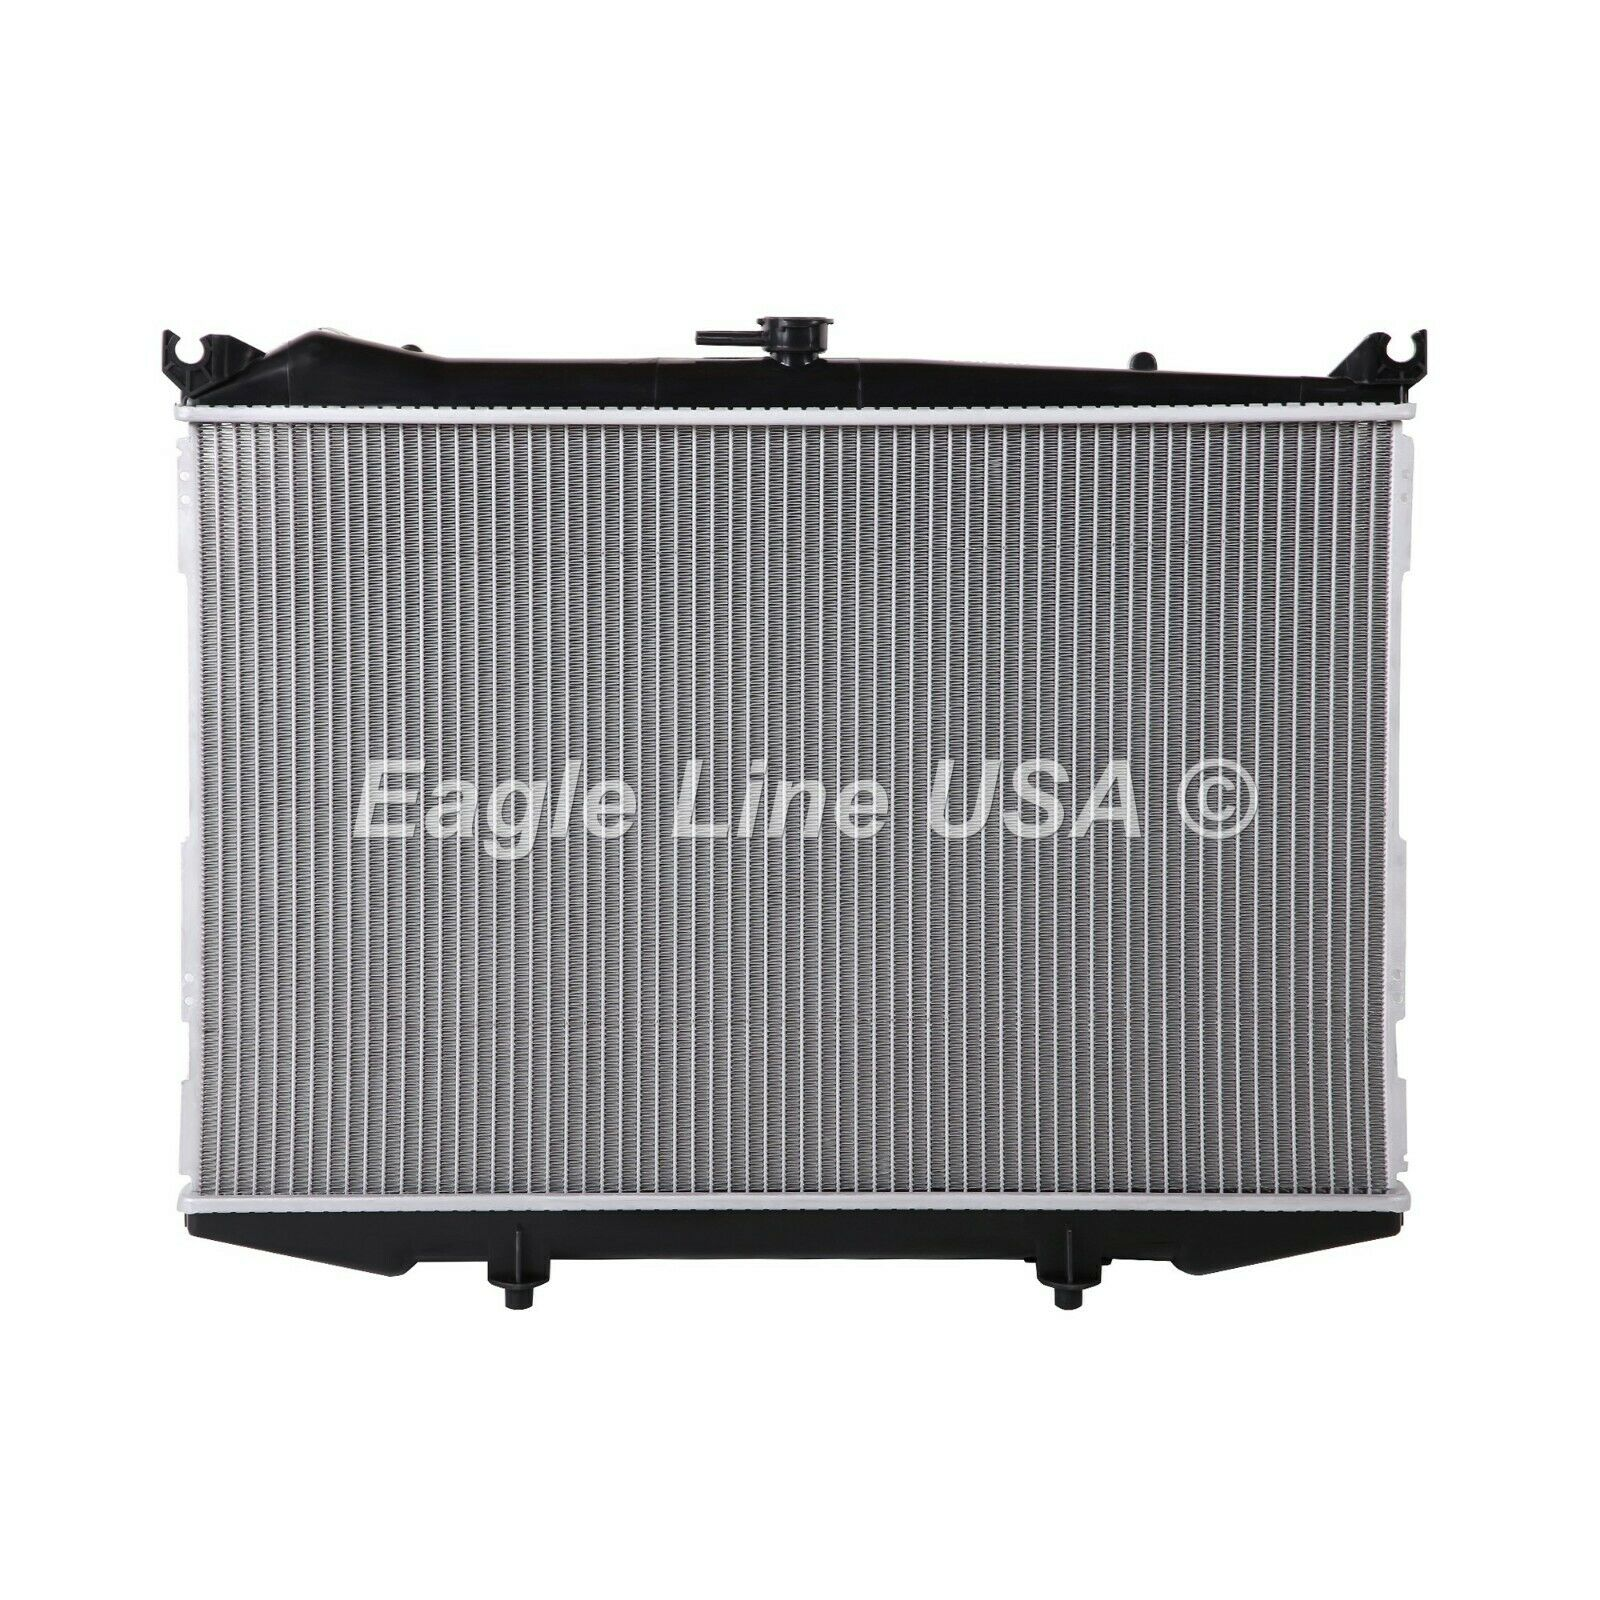 New Radiator 314 for Nissan D21 86-94 Pathfinder 87-95 Pickup 95-97 2.4 L4 3 V6